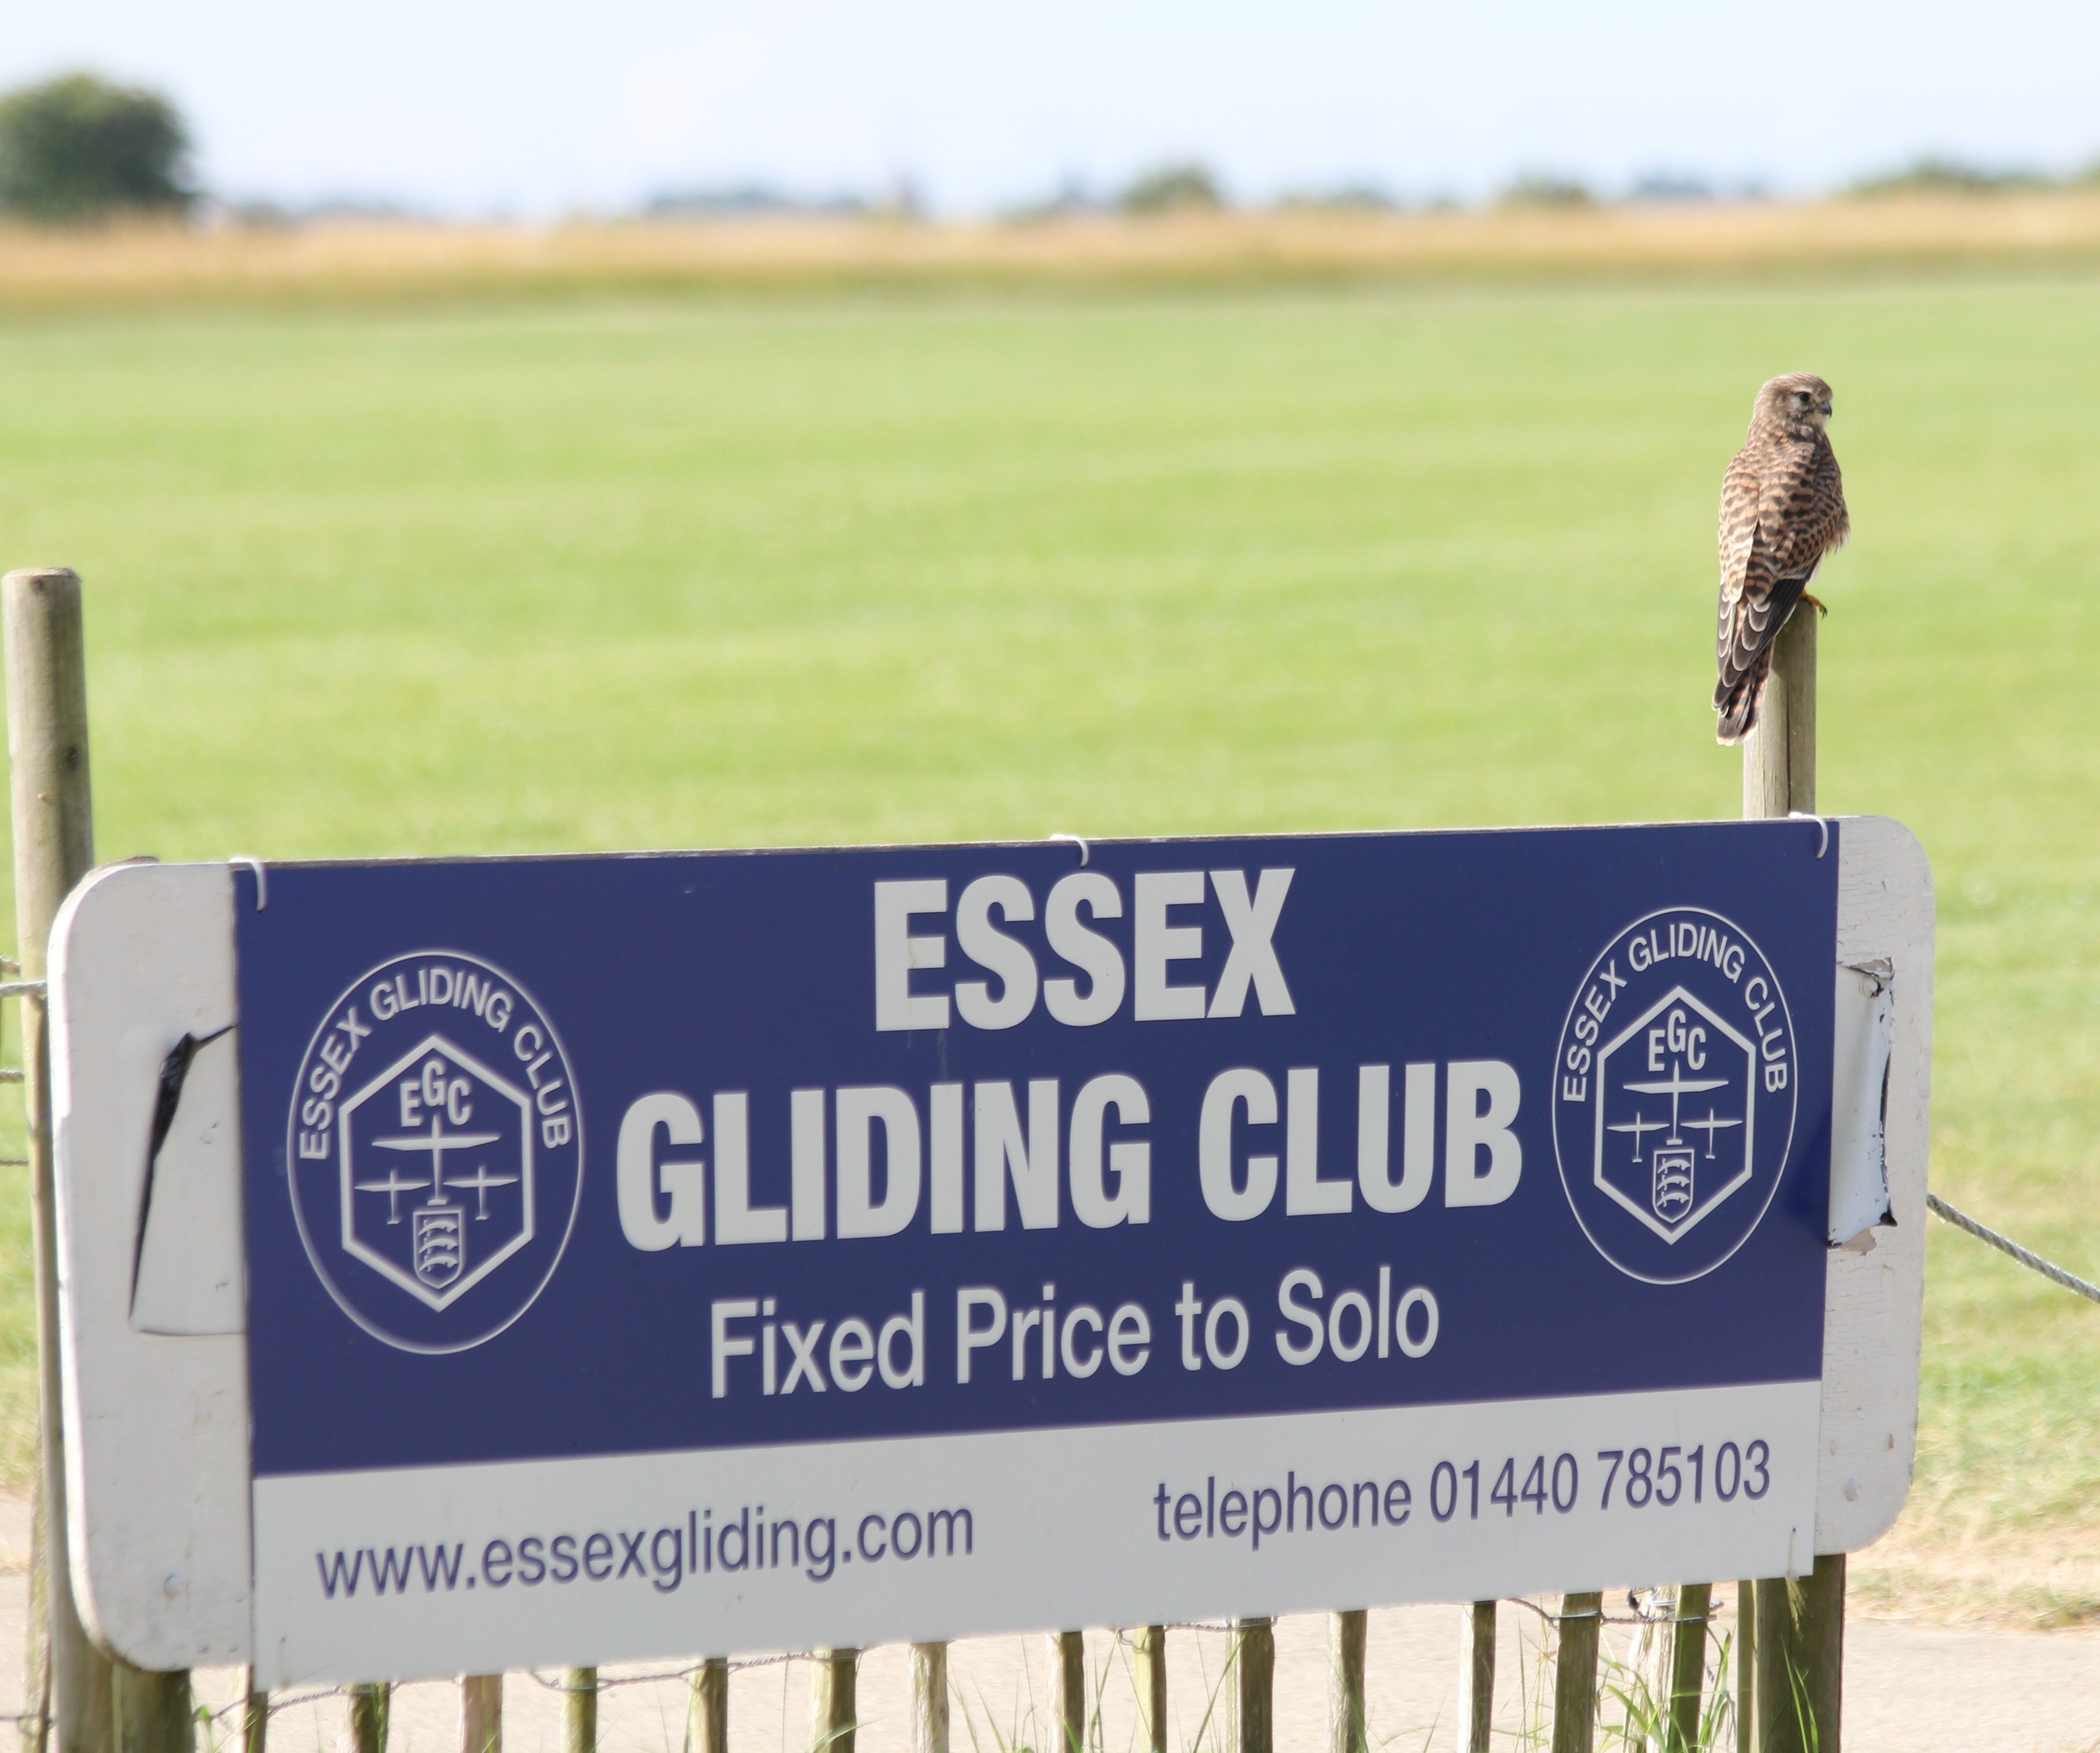 Essex Gliding Club Kestrel